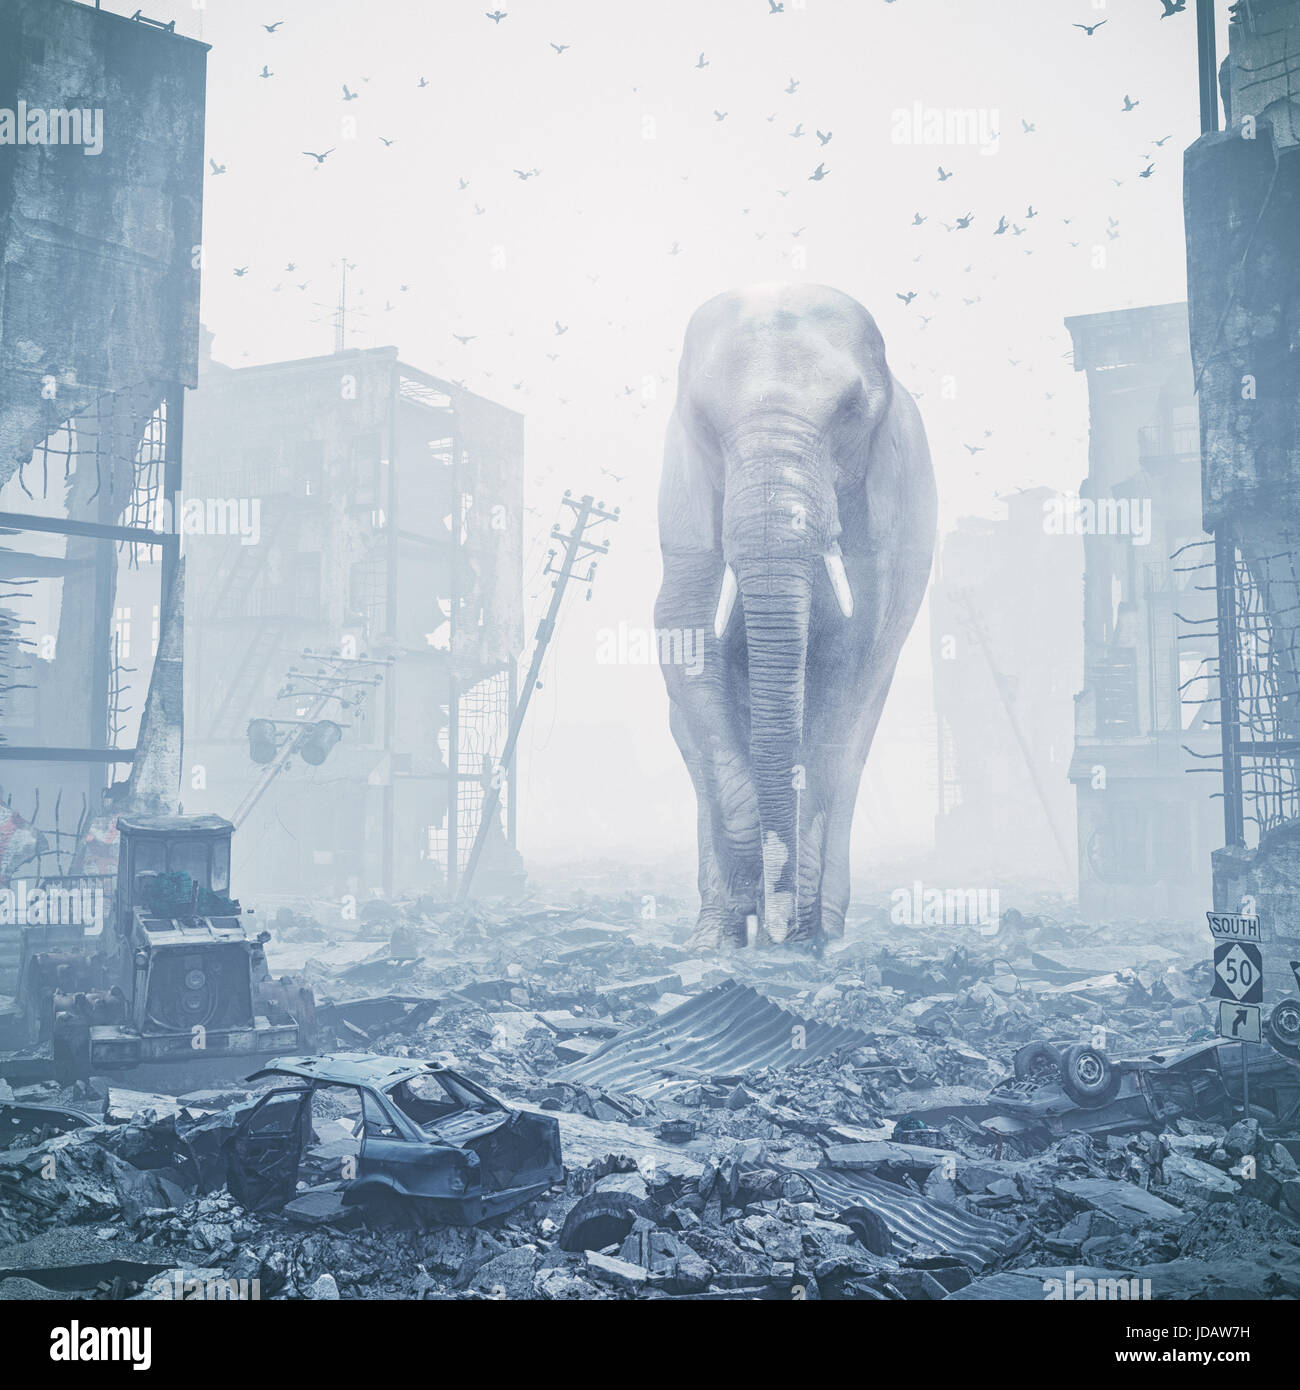 giant elephant in destroyed city. creative concept. Media mixed. Noise added - Stock Image